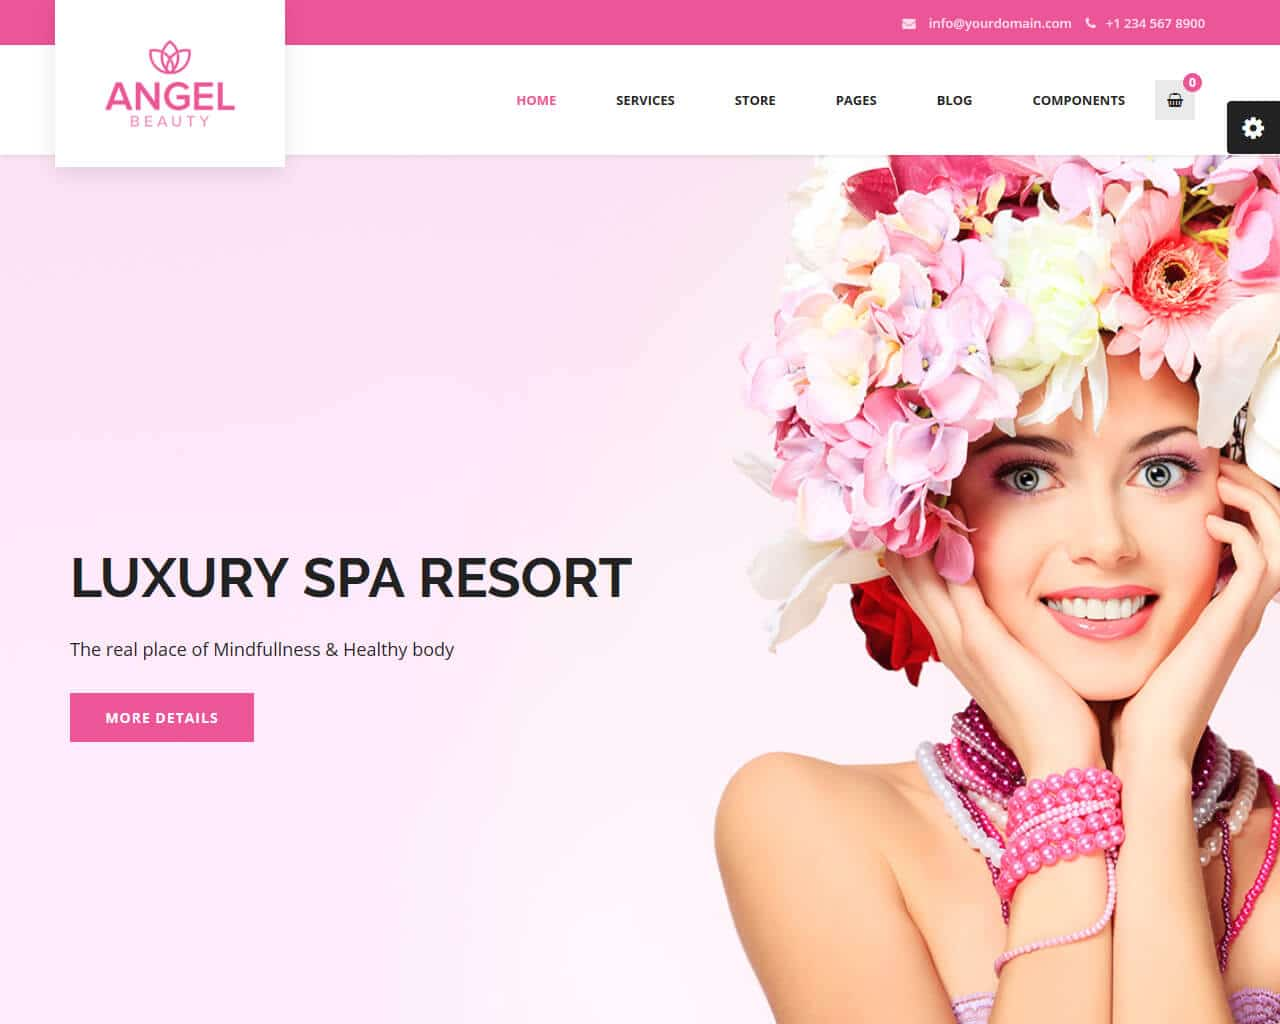 20 Best Beauty Salon And Spa Website Templates